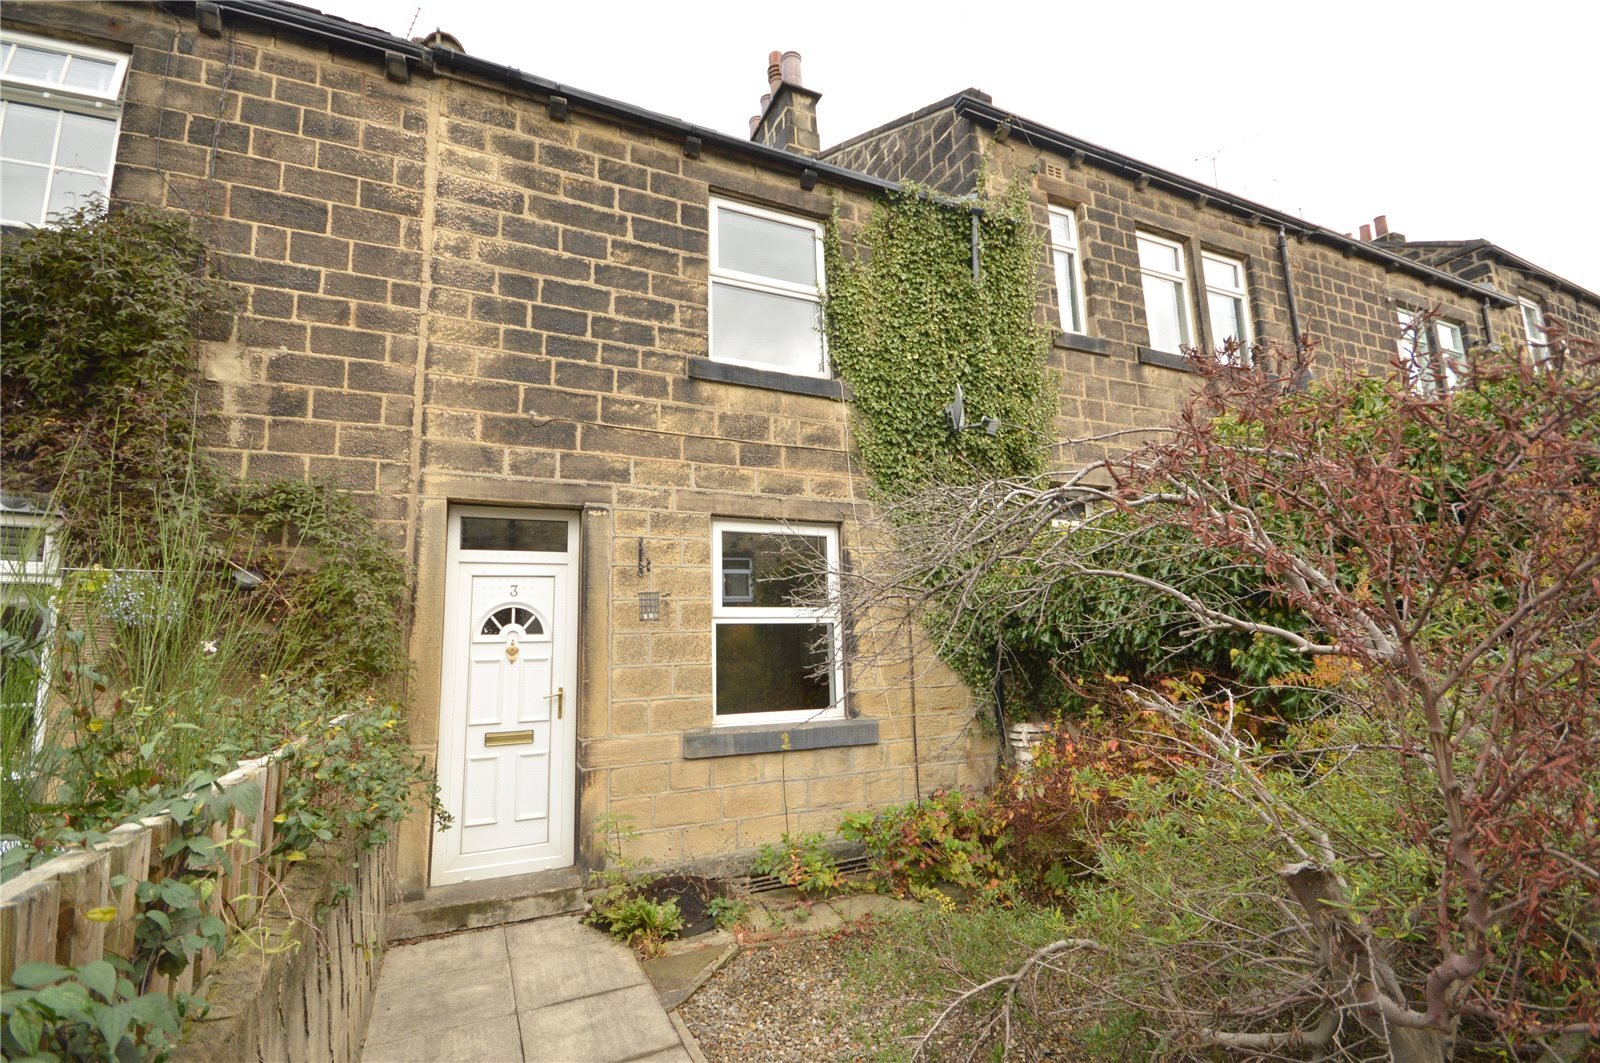 Property for sale in Guiseley, exterior of home